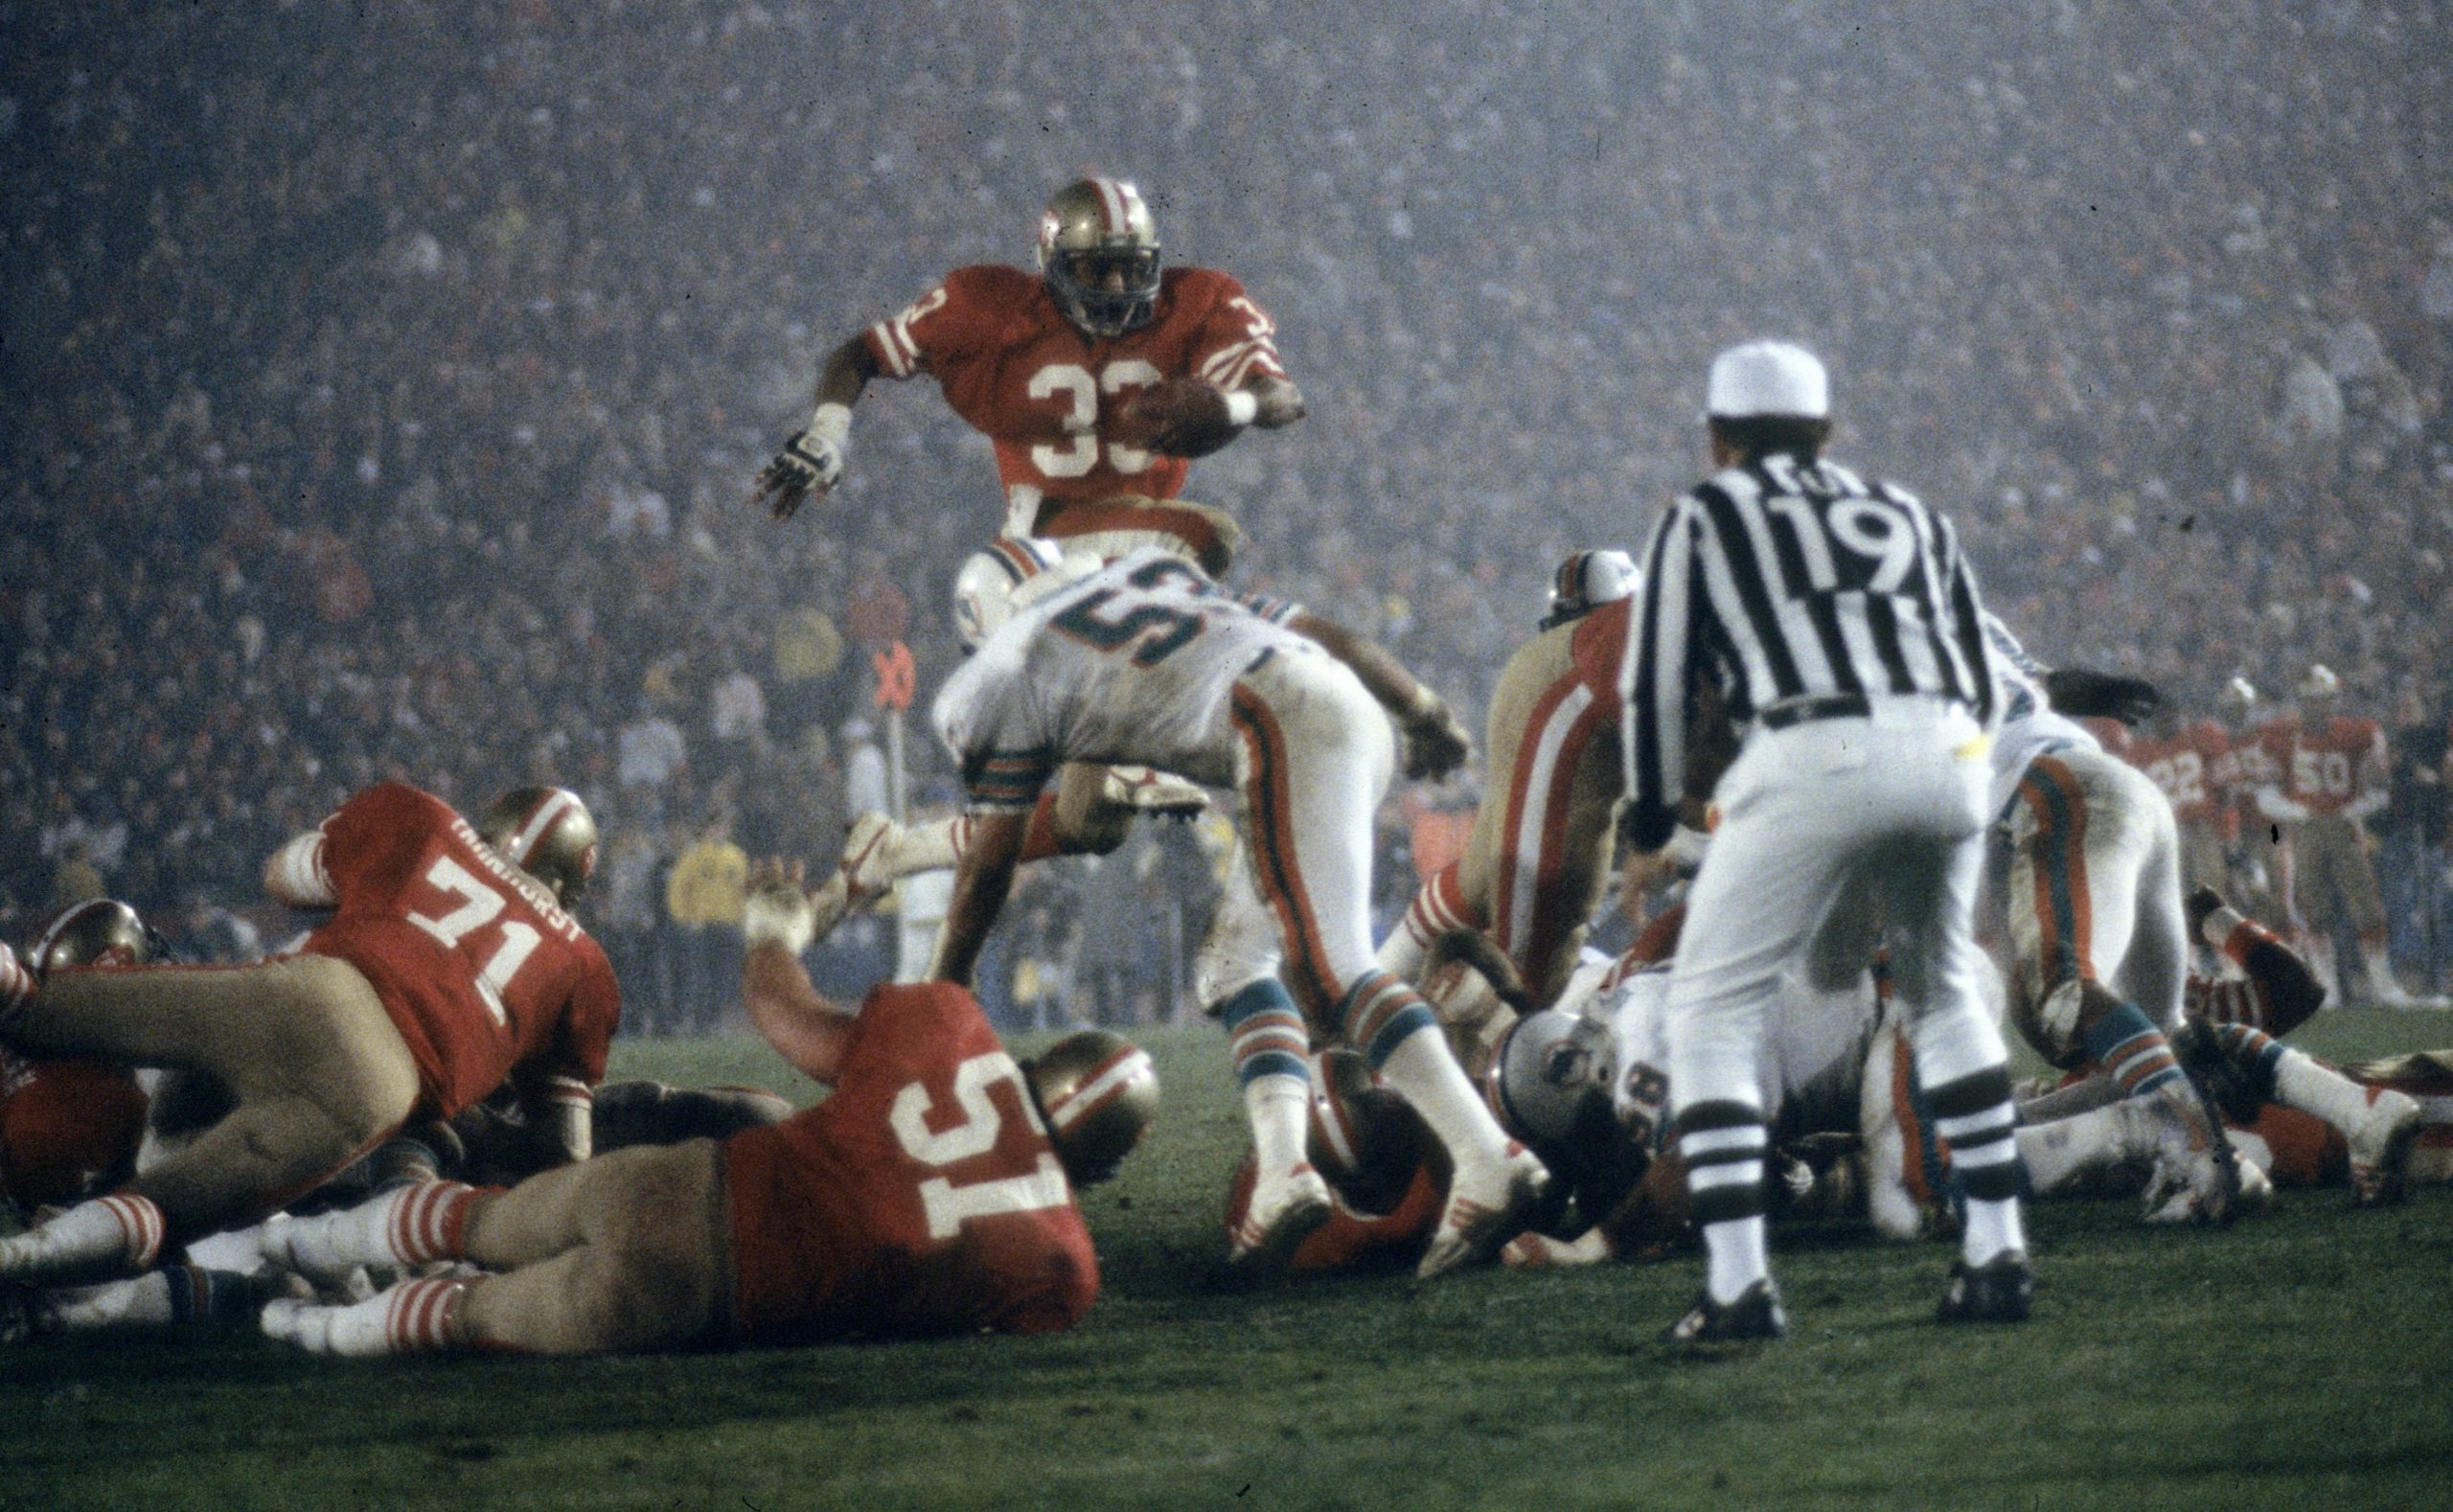 My First Super Bowl |Roger Craig for Super Bowl Played In Miami